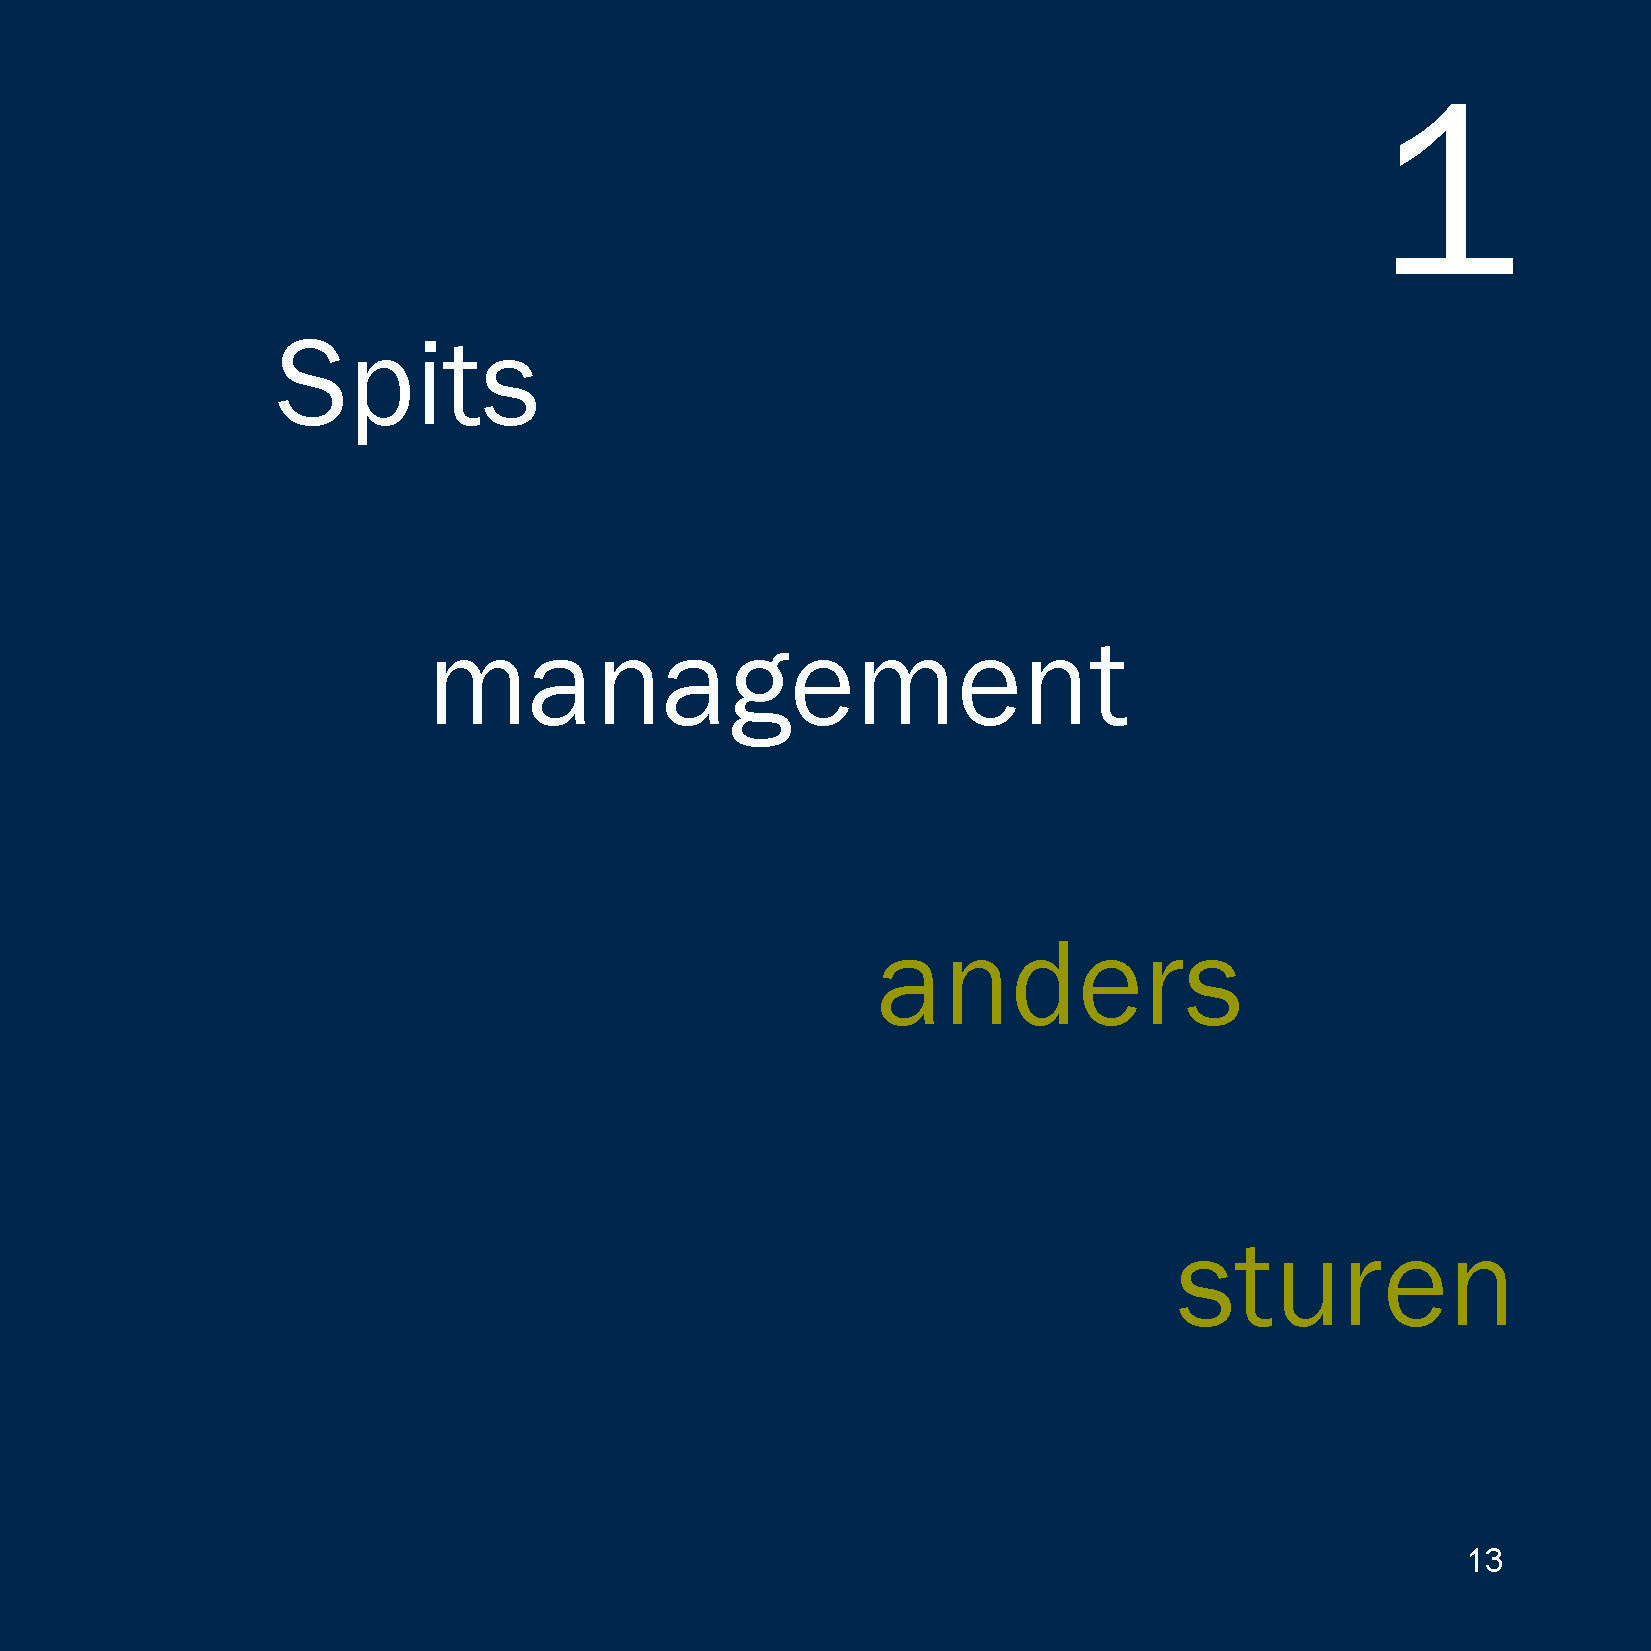 Spitsmanagement